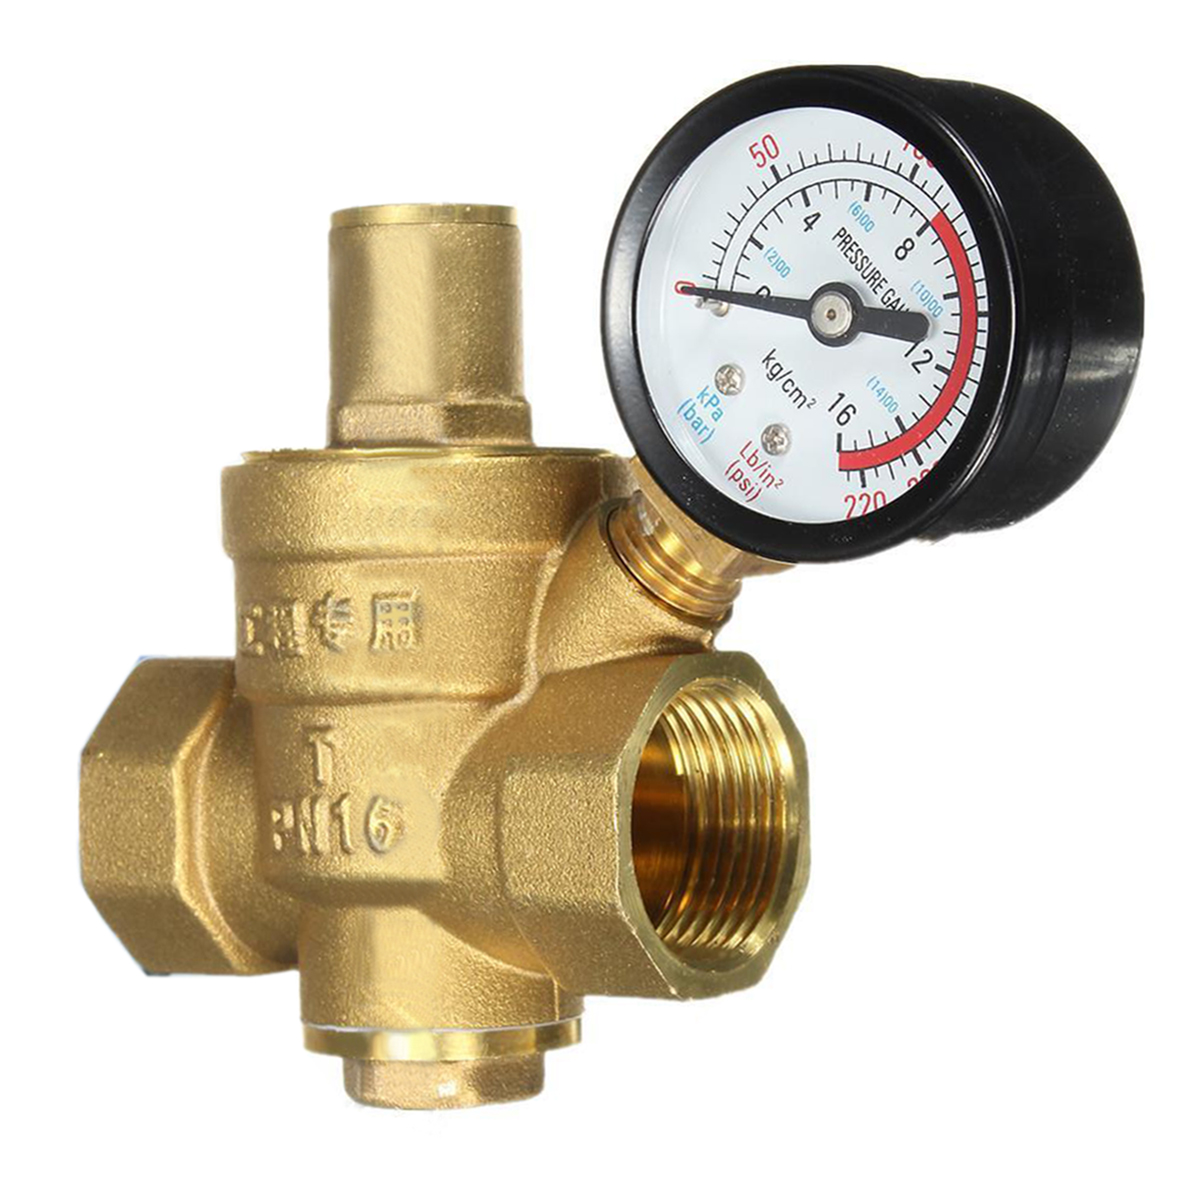 dn20 3 4 brass water pressure reducing maintaining valves regulator may. Black Bedroom Furniture Sets. Home Design Ideas